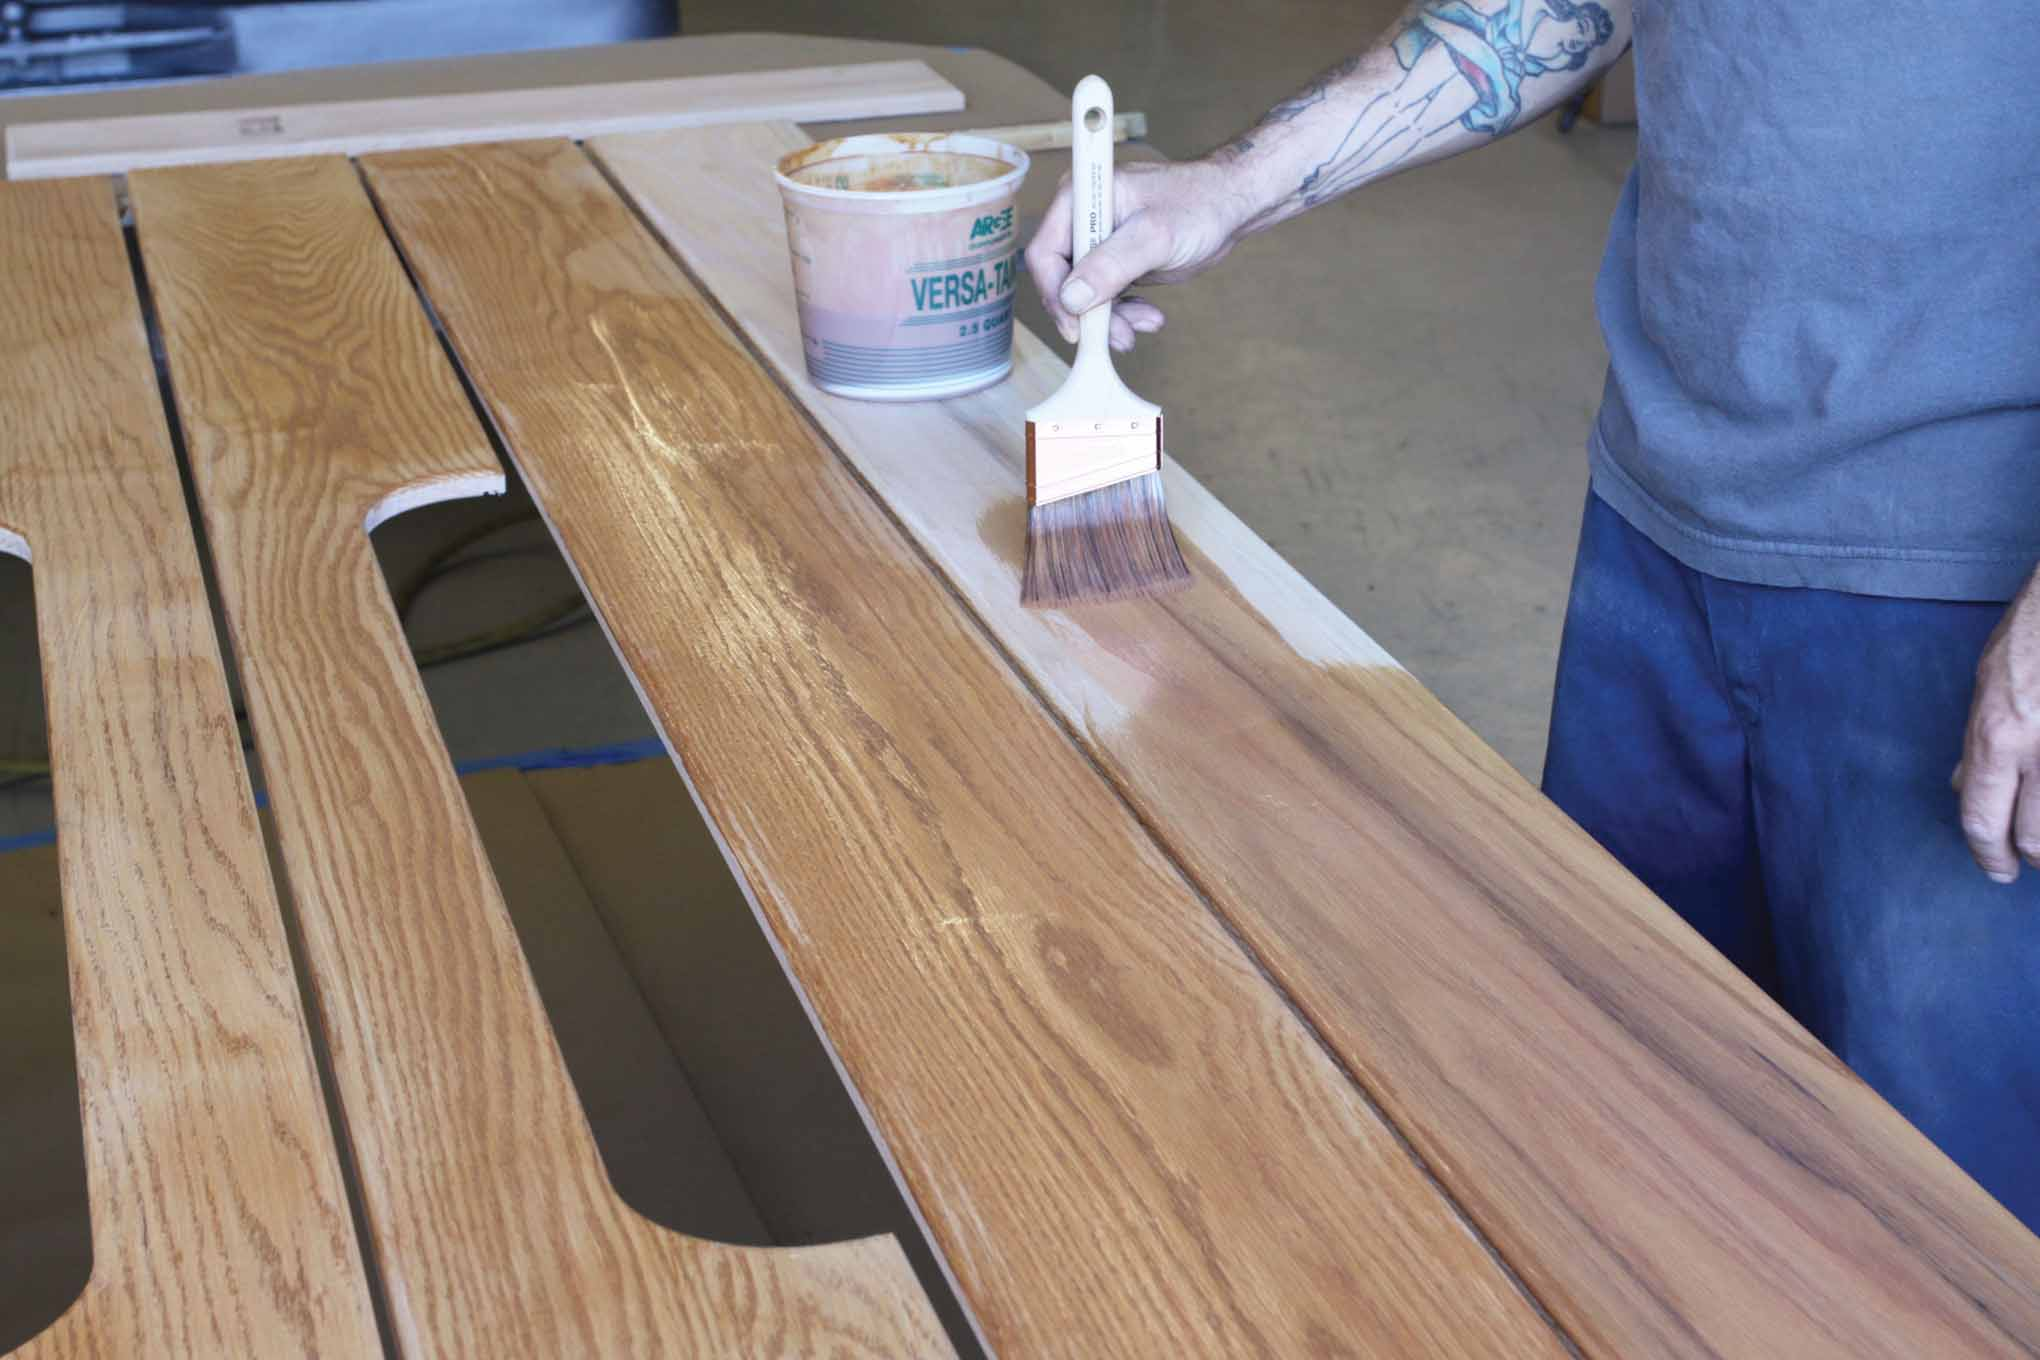 It's a good idea to seal the underside of the bed wood first. One coat was applied.